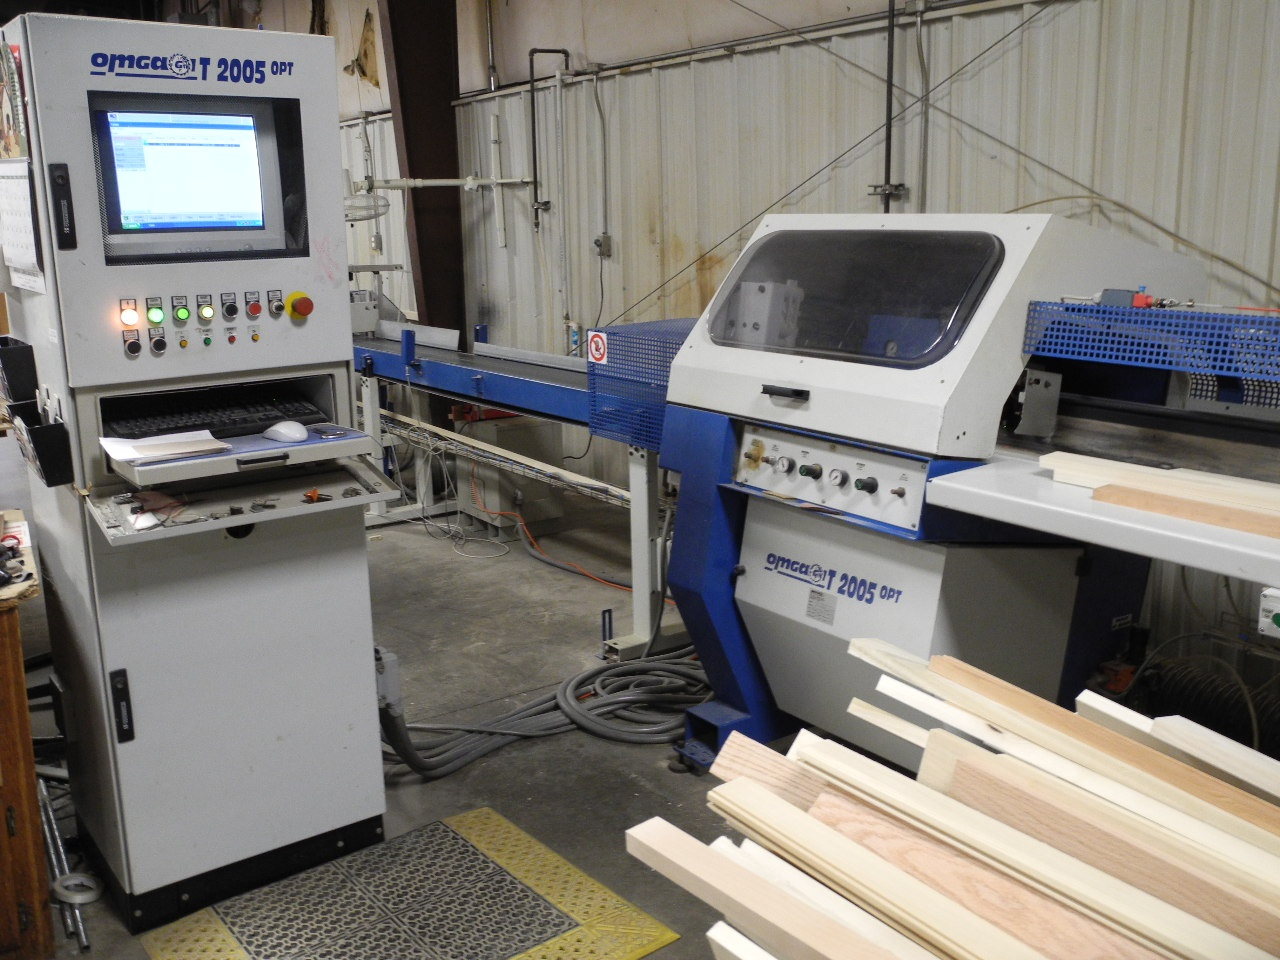 Boards are fed through an Omga GT 2005 OPT cutoff saw and optimizer that cuts pieces of clean lumber.